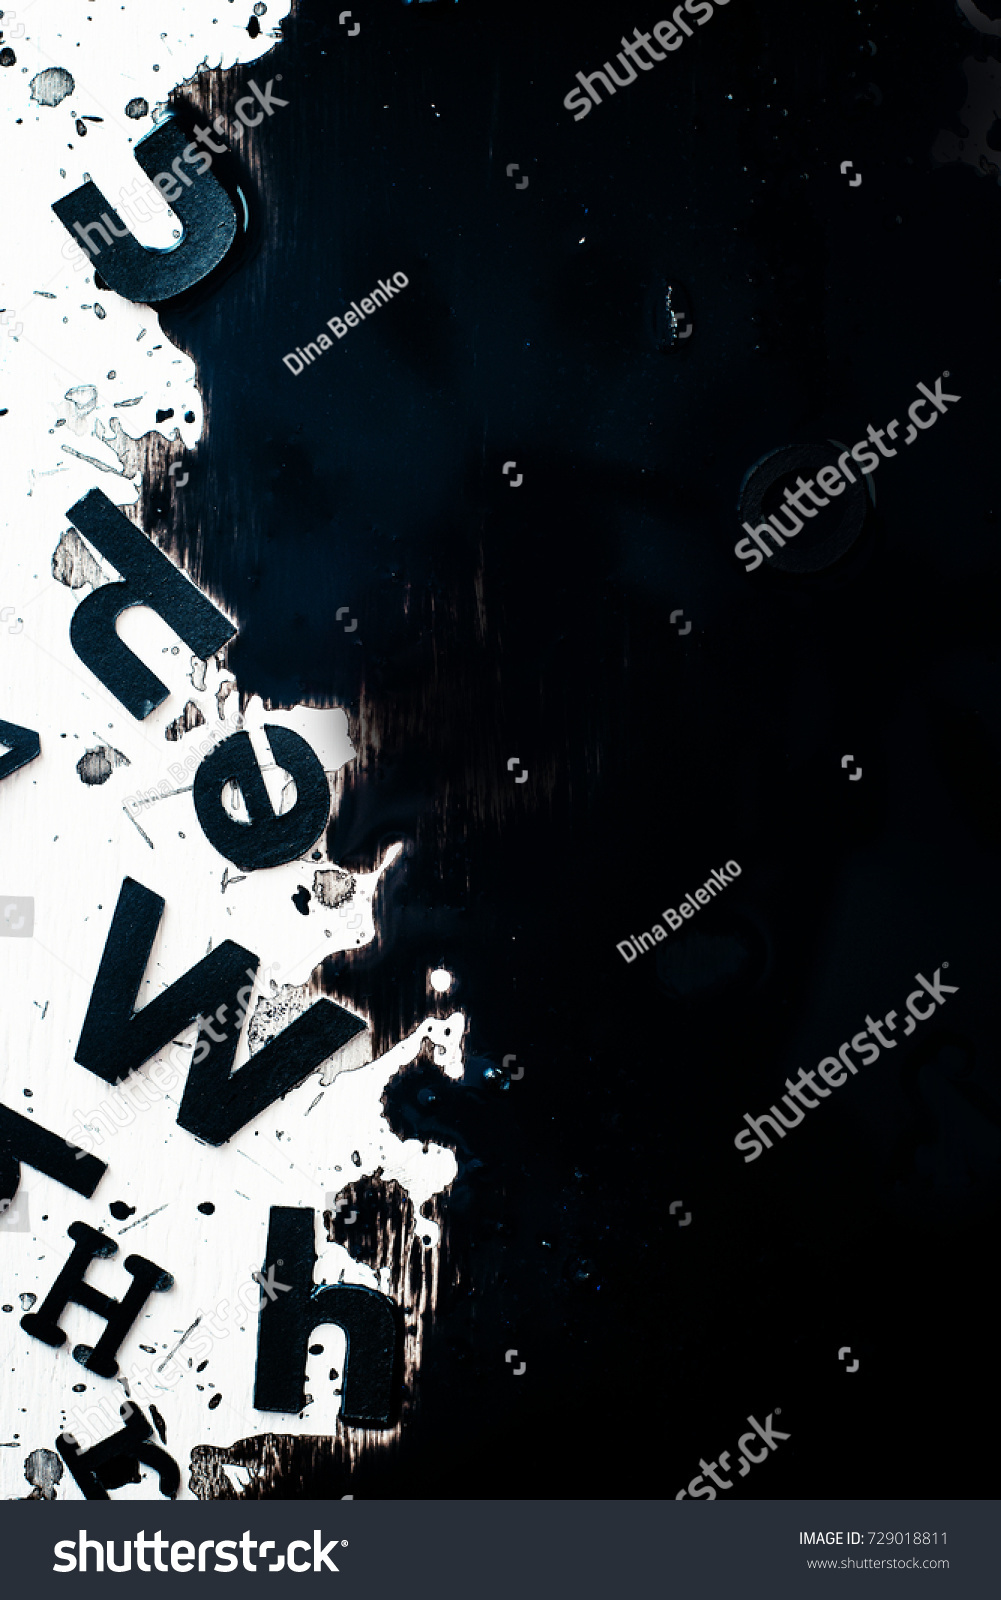 scattered letters blurring spilled ink creative stock photo (edit